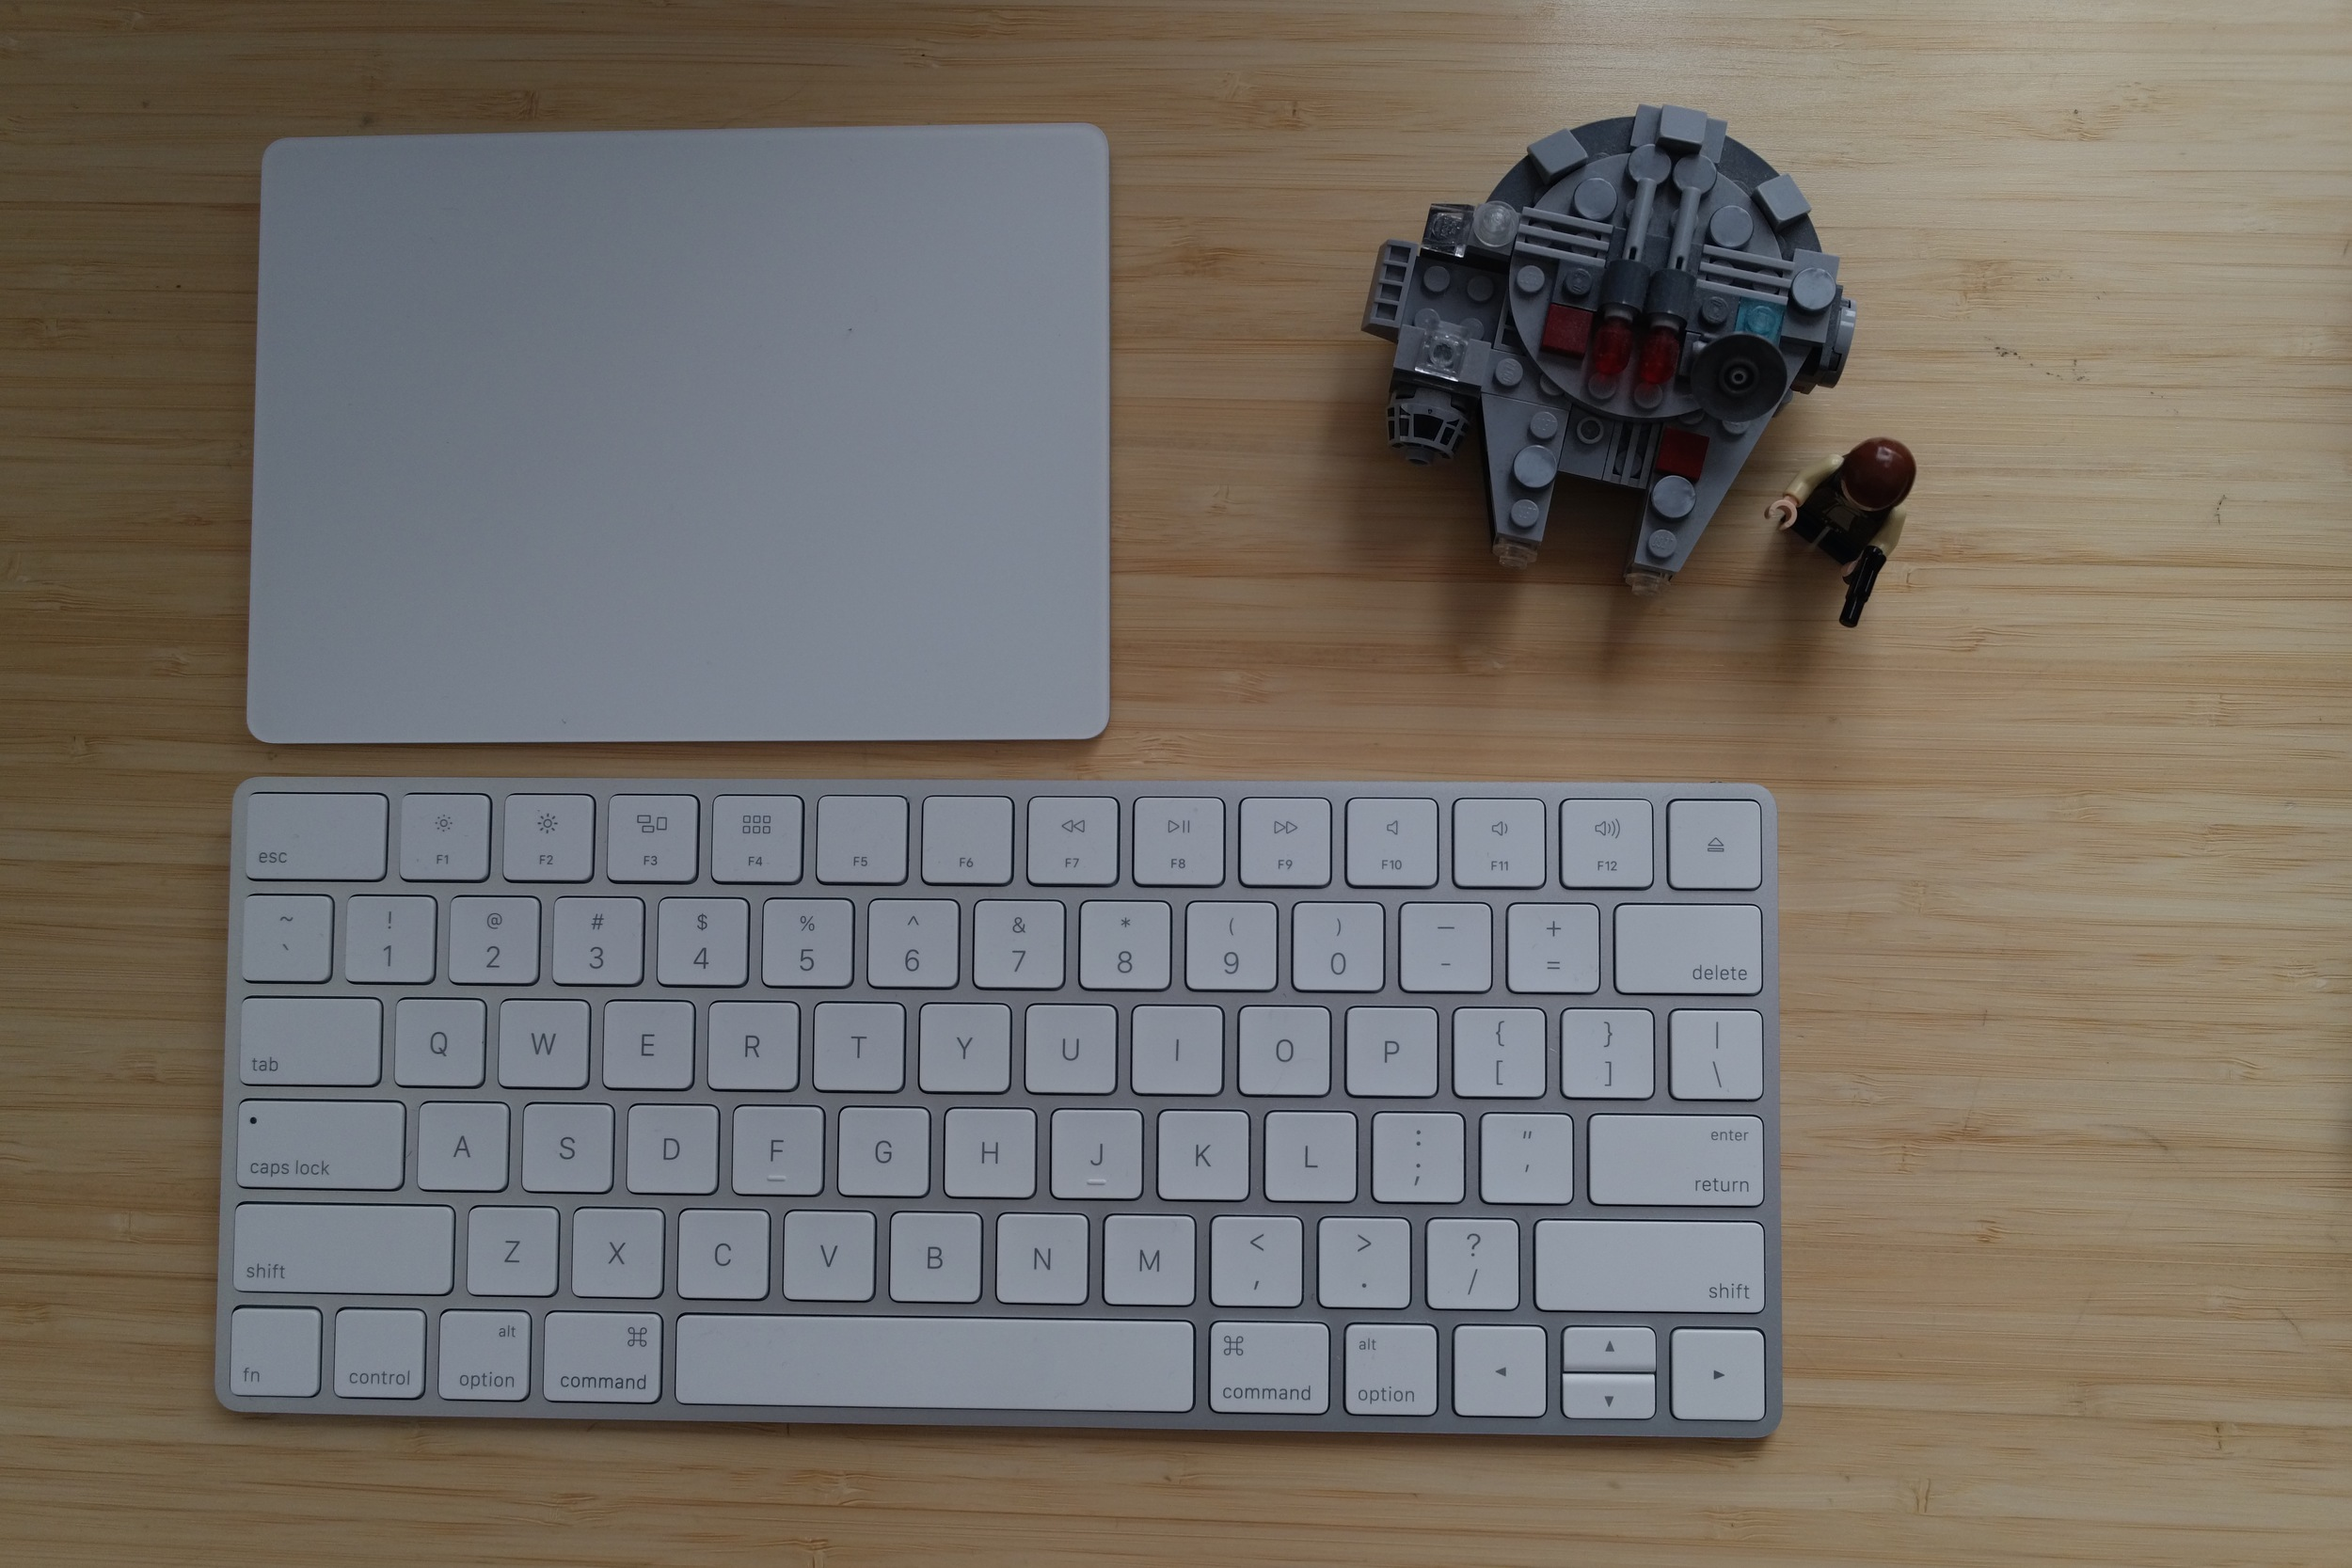 That's right. The Magic Trackpad 2 is bigger than the Millennium Falcon.